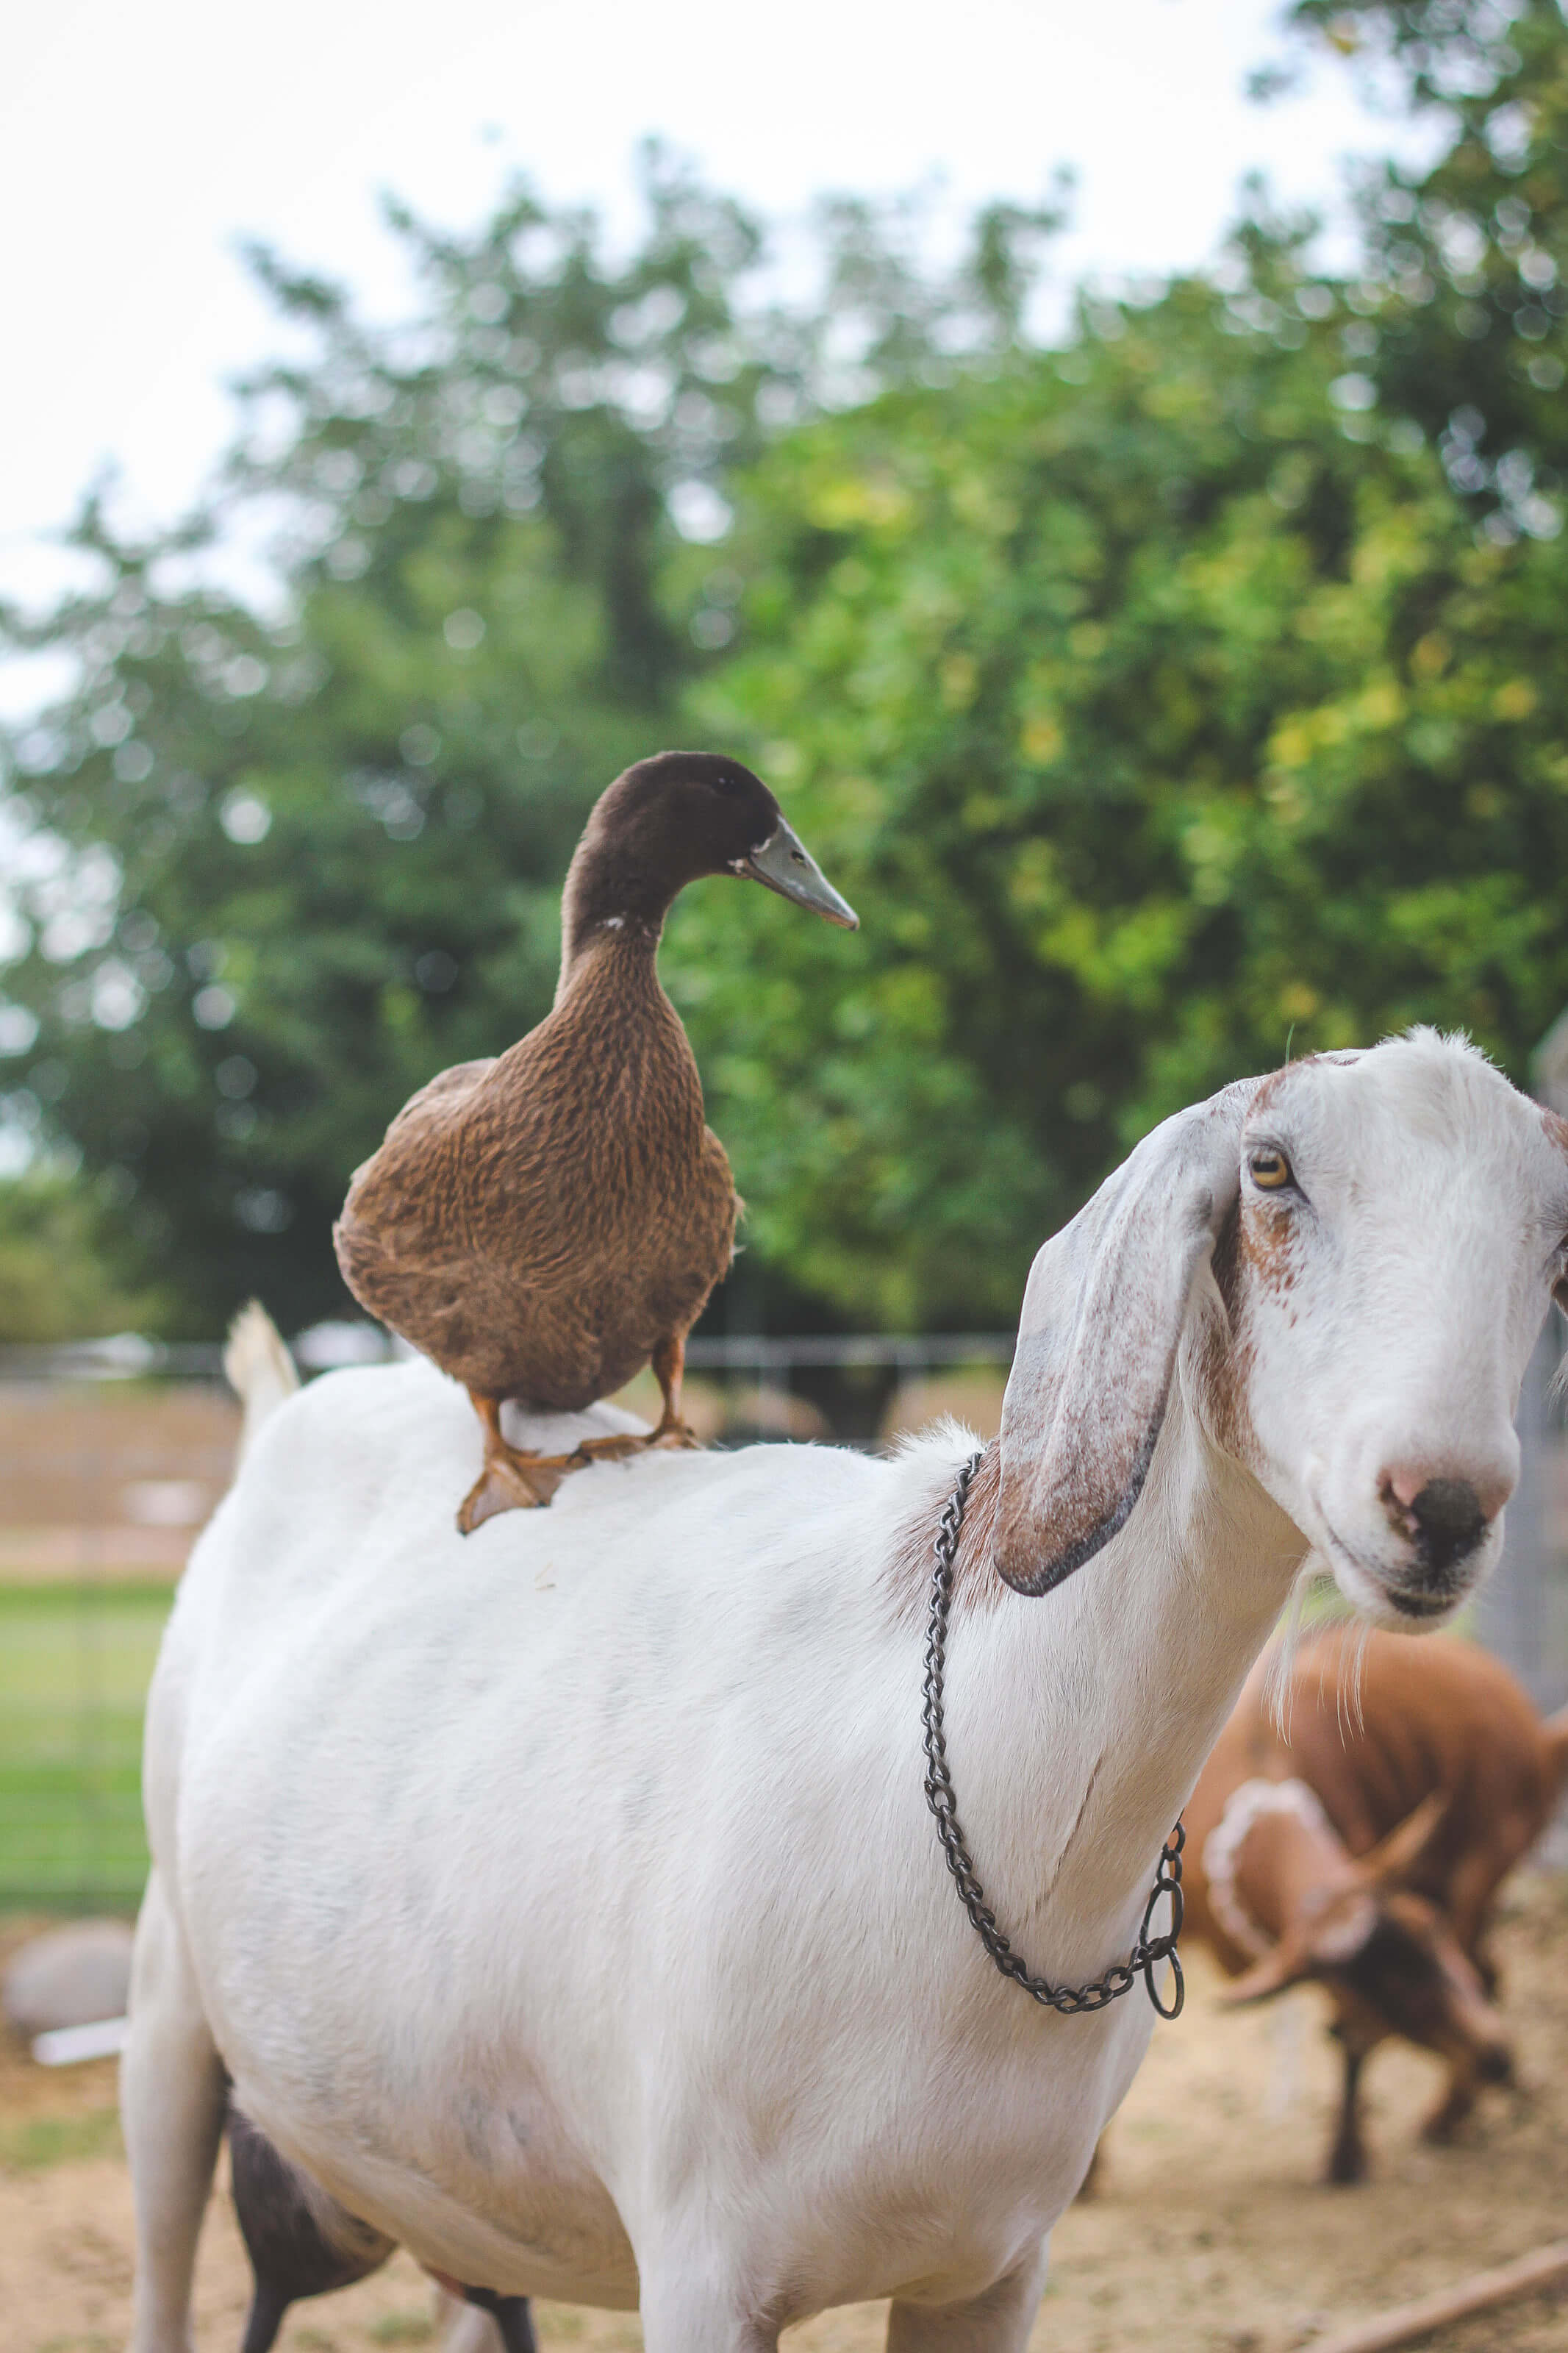 Duck sitting on goat's back on farm.